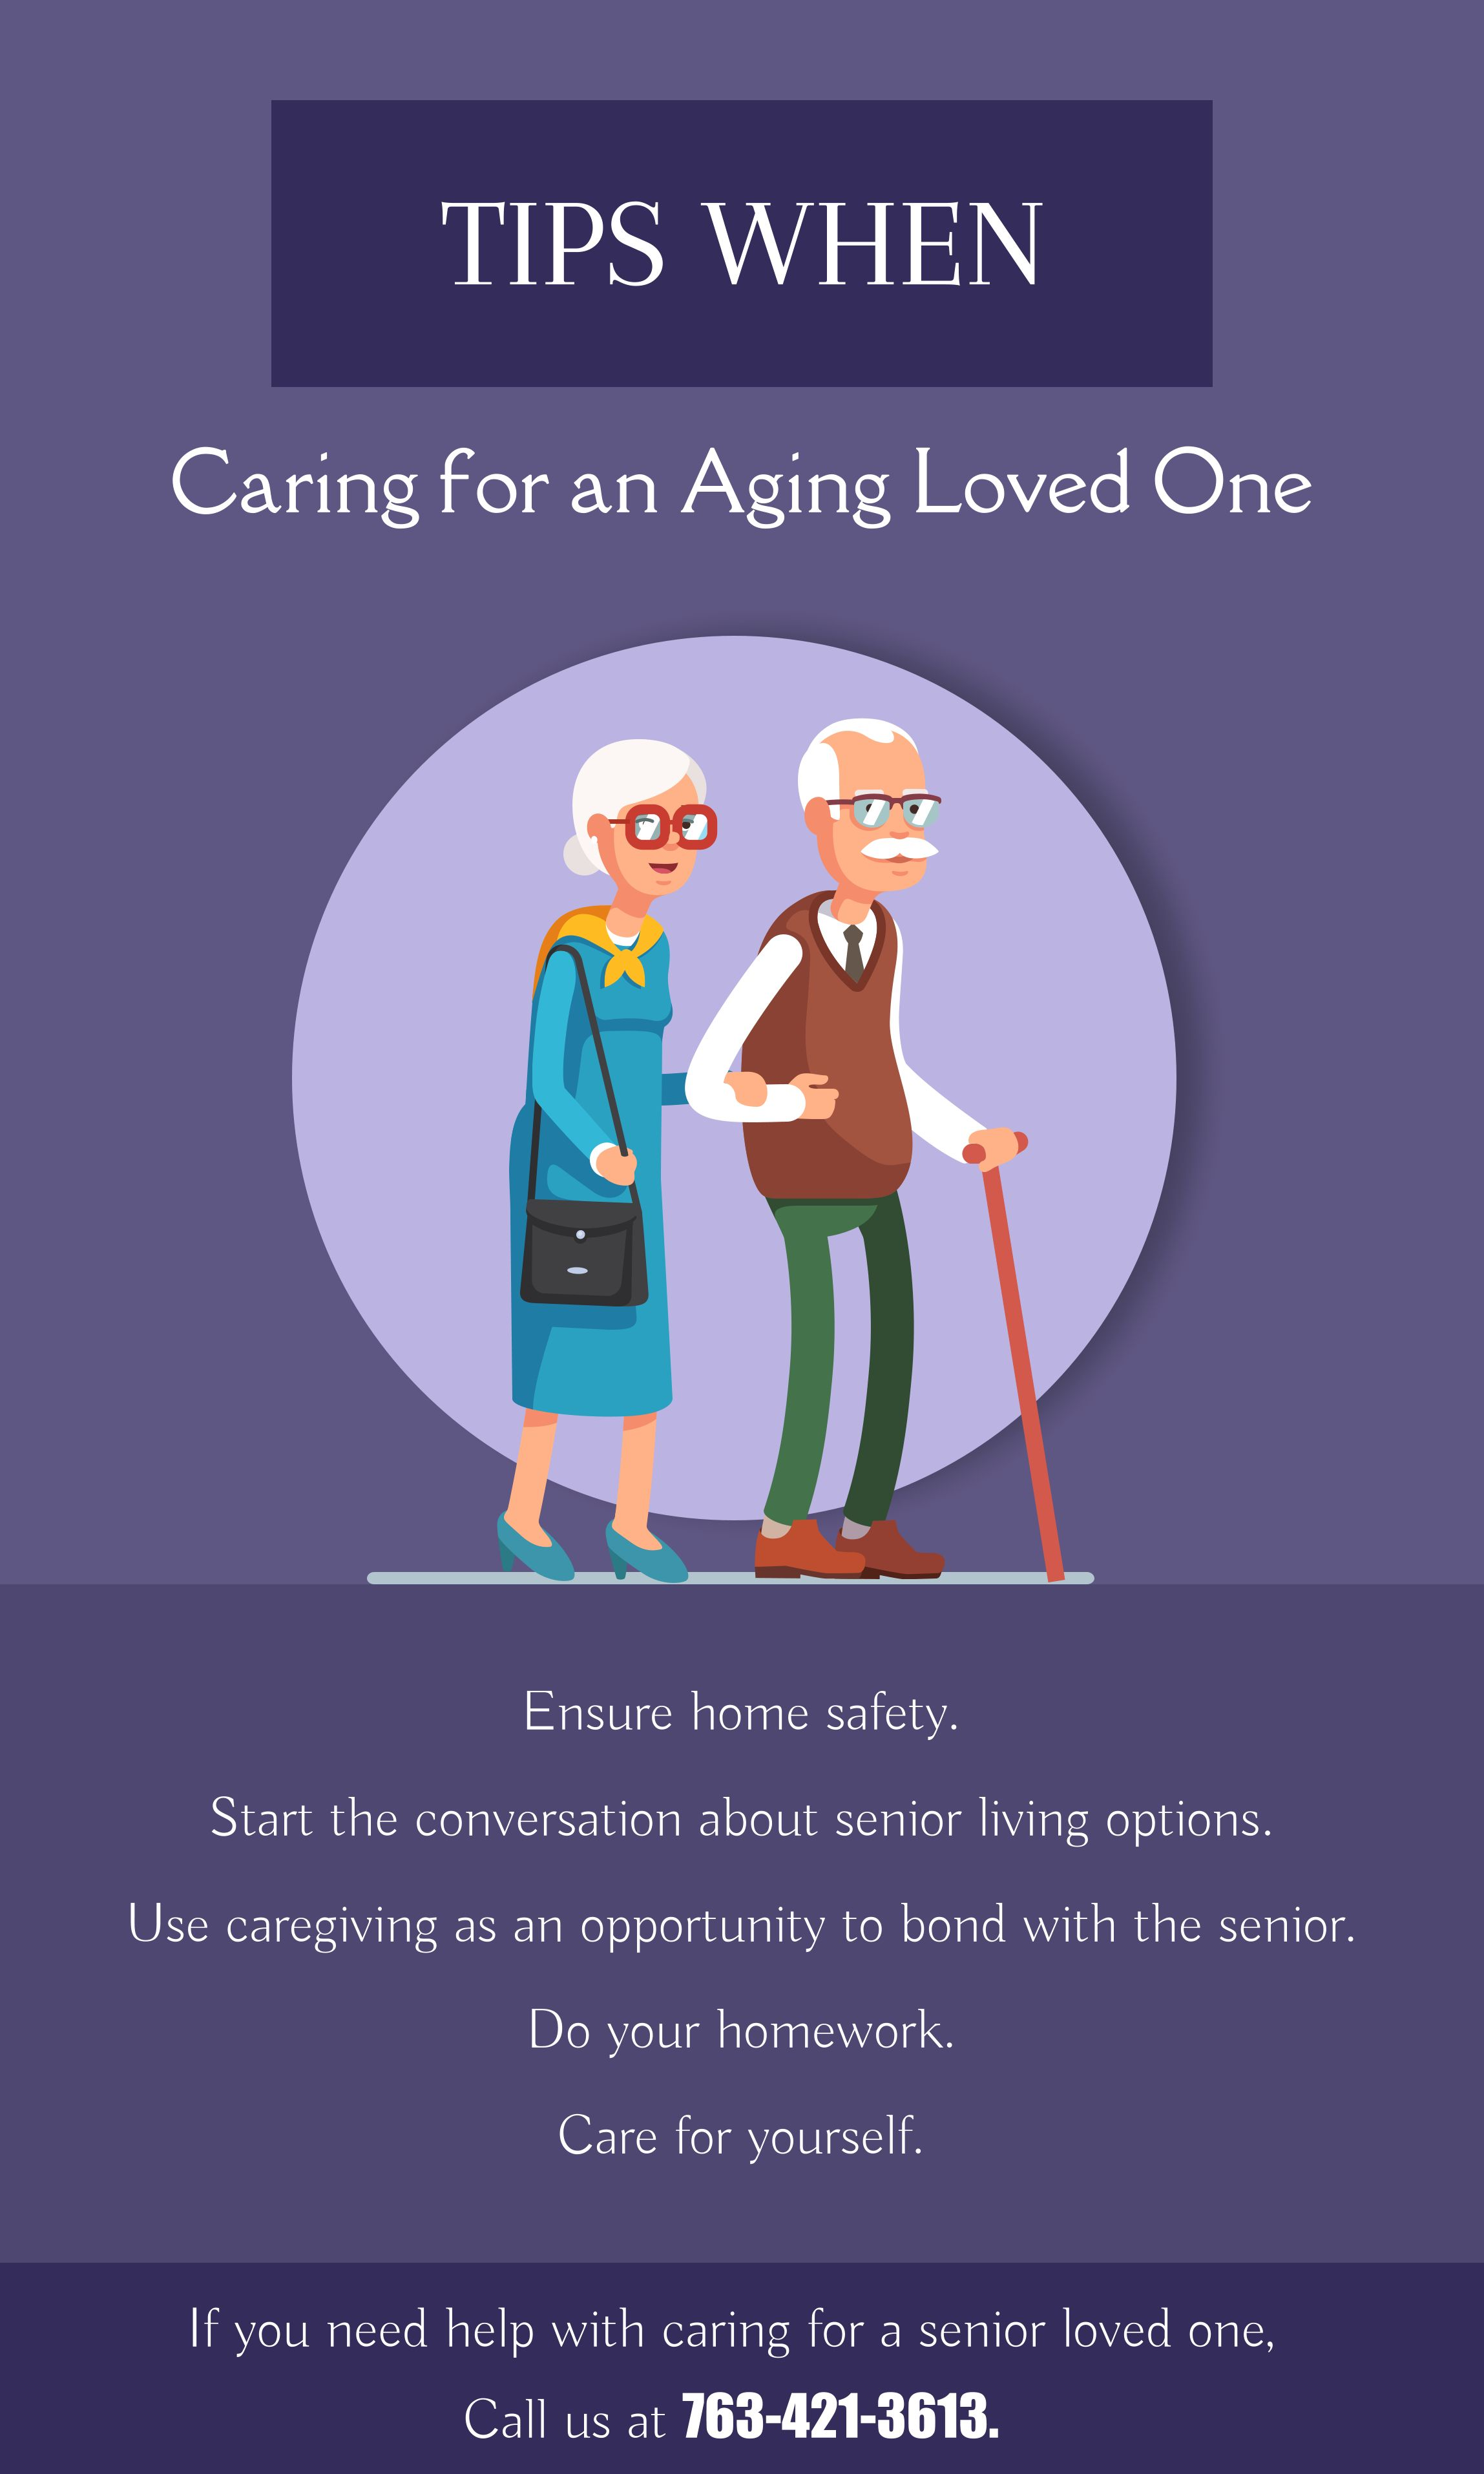 Tips when Caring for an Aging Loved One. HealthTips